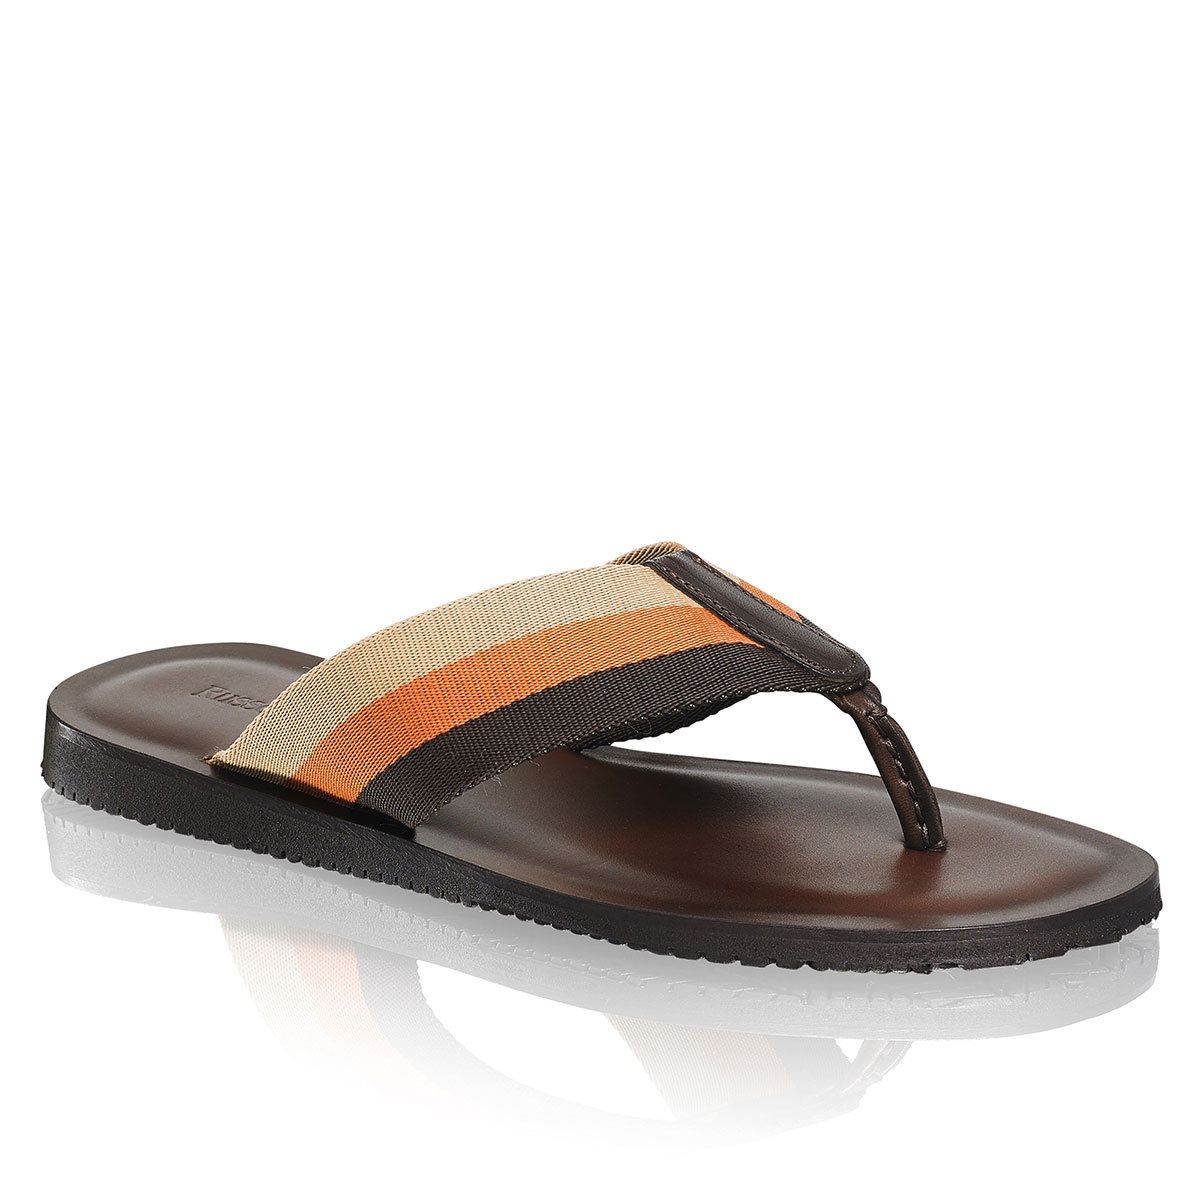 Russell and Bromley FAB POST Toe-Post Sandal